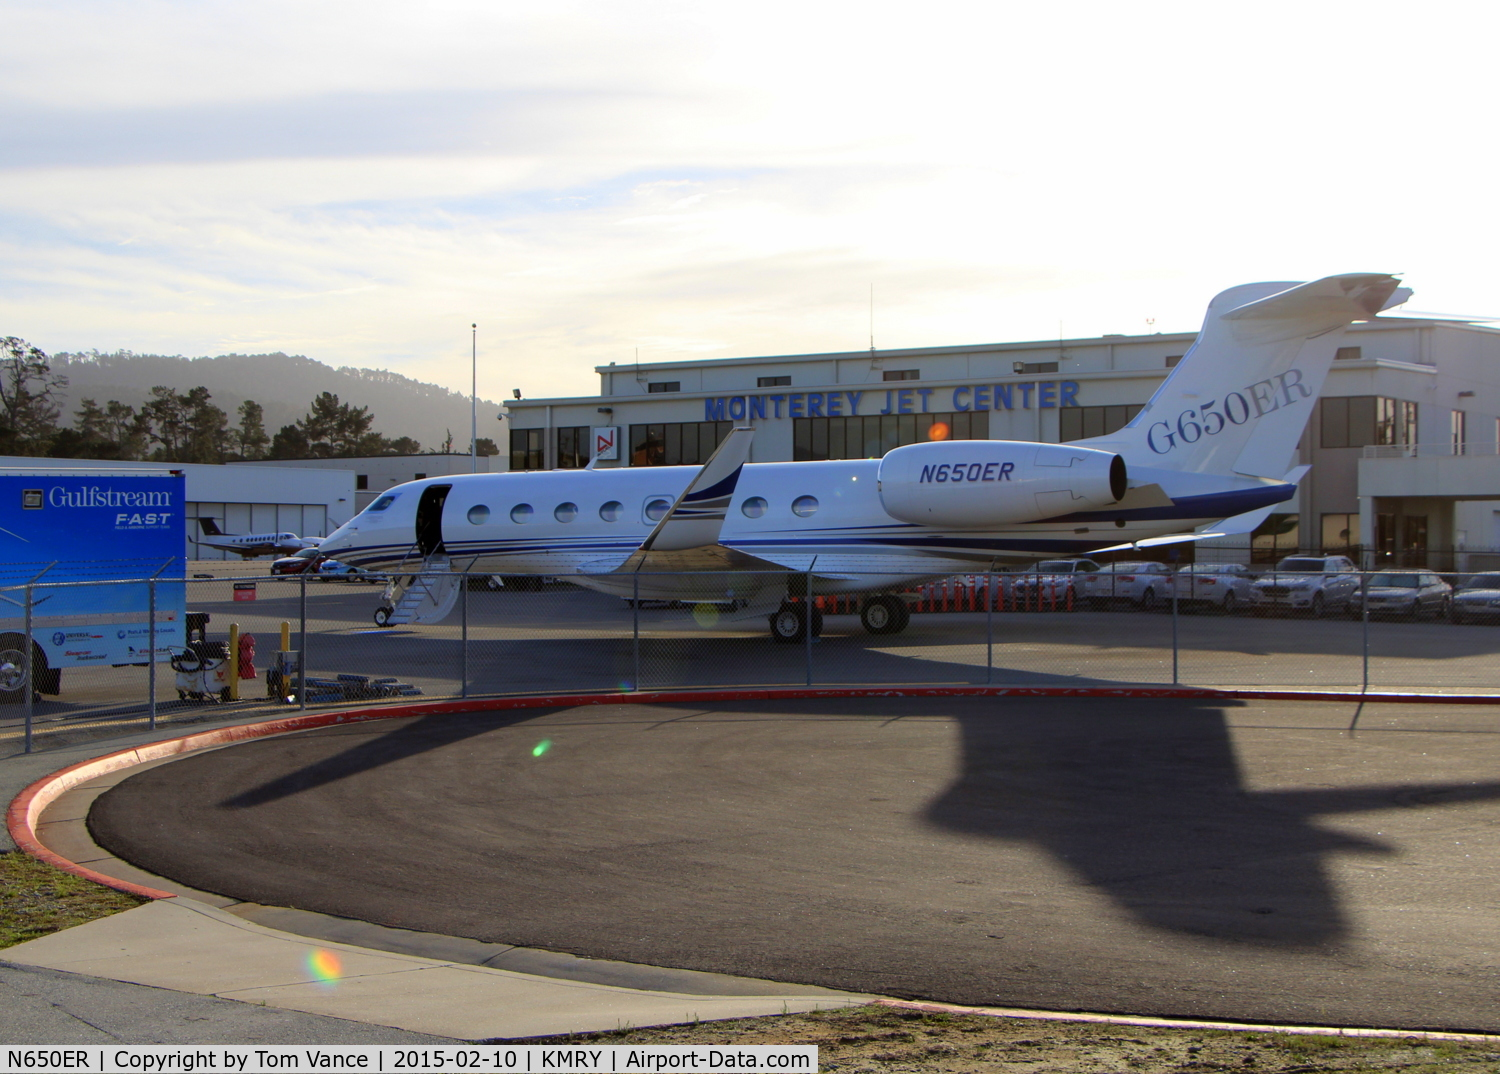 N650er 2017 Gulfstream Vi G650 C N 6084 At Monterey Jet Center During